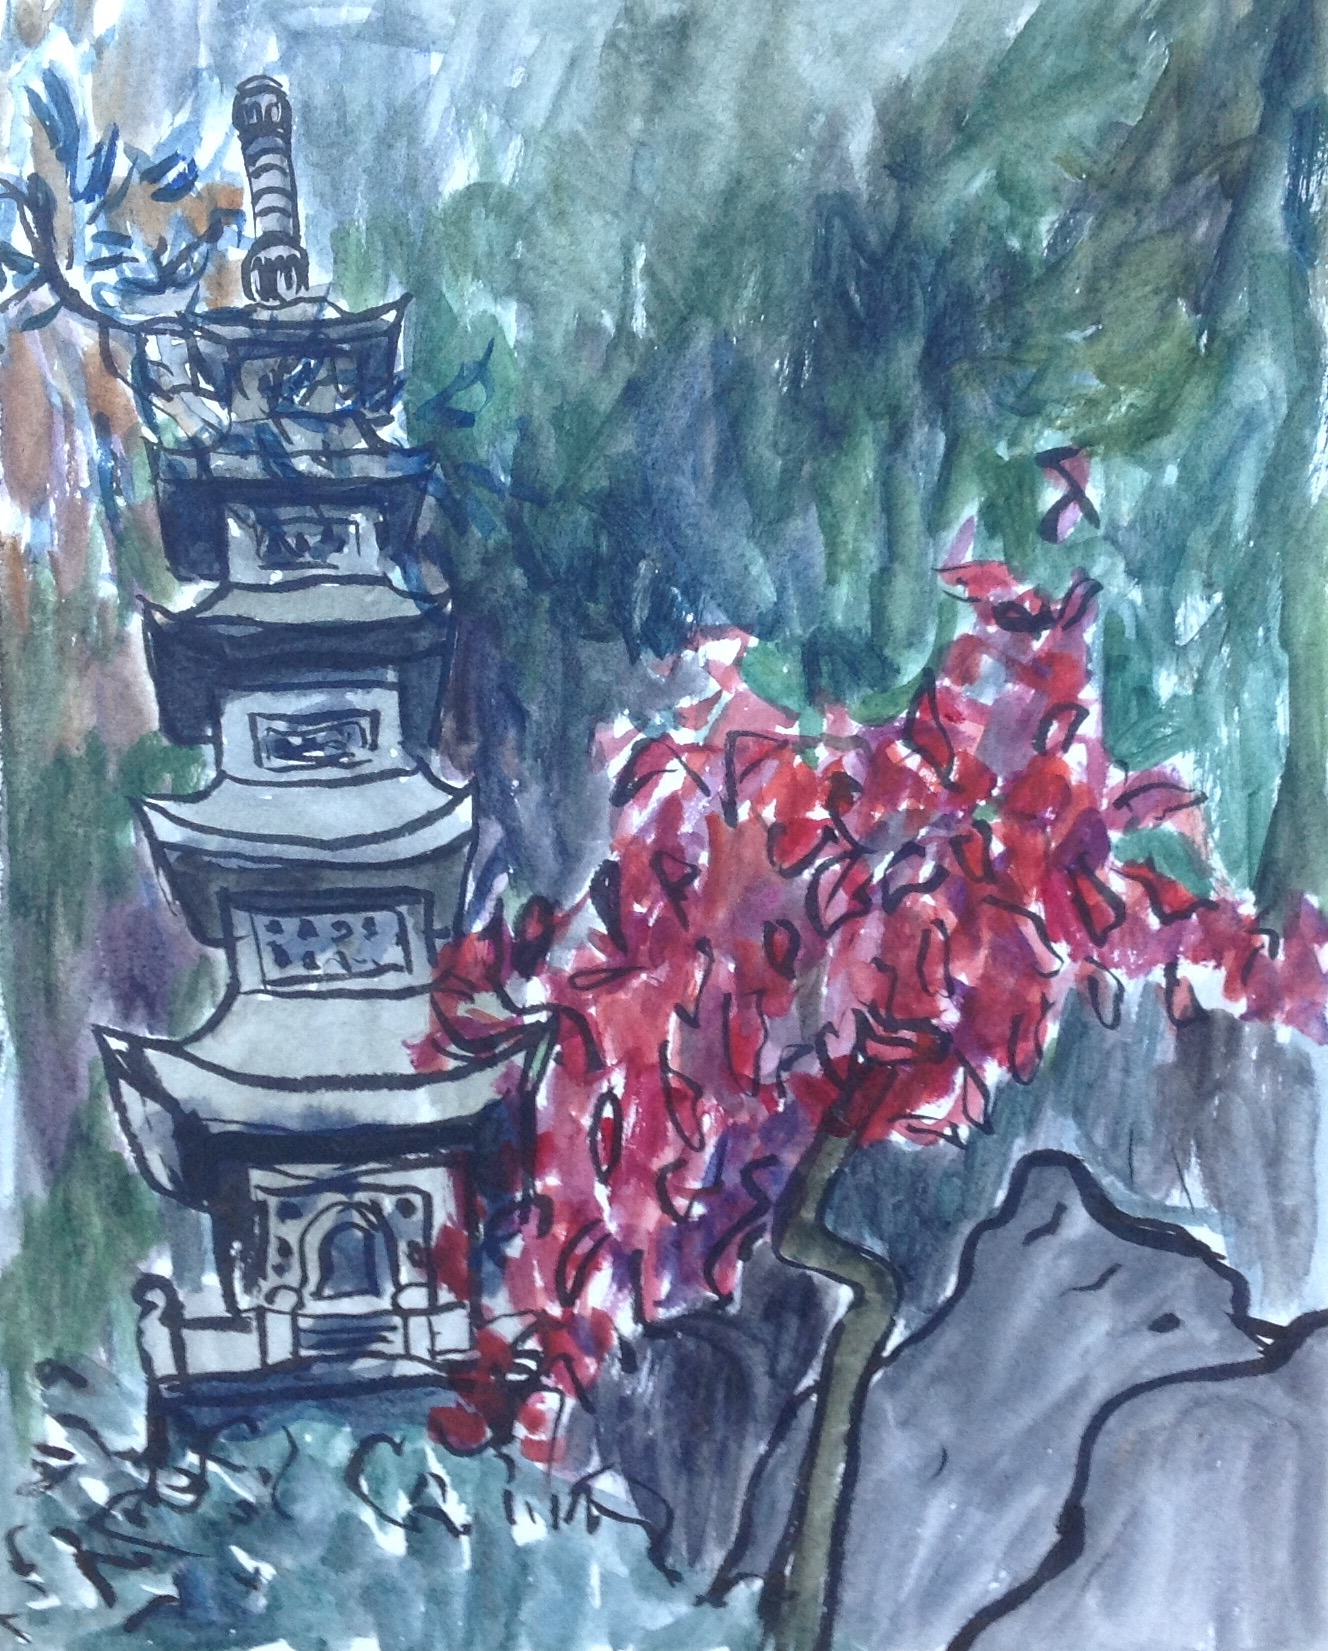 To paint this stone pagoda, I balanced precariously on a rock along the walk way, trying to stay out of the way of passersby.